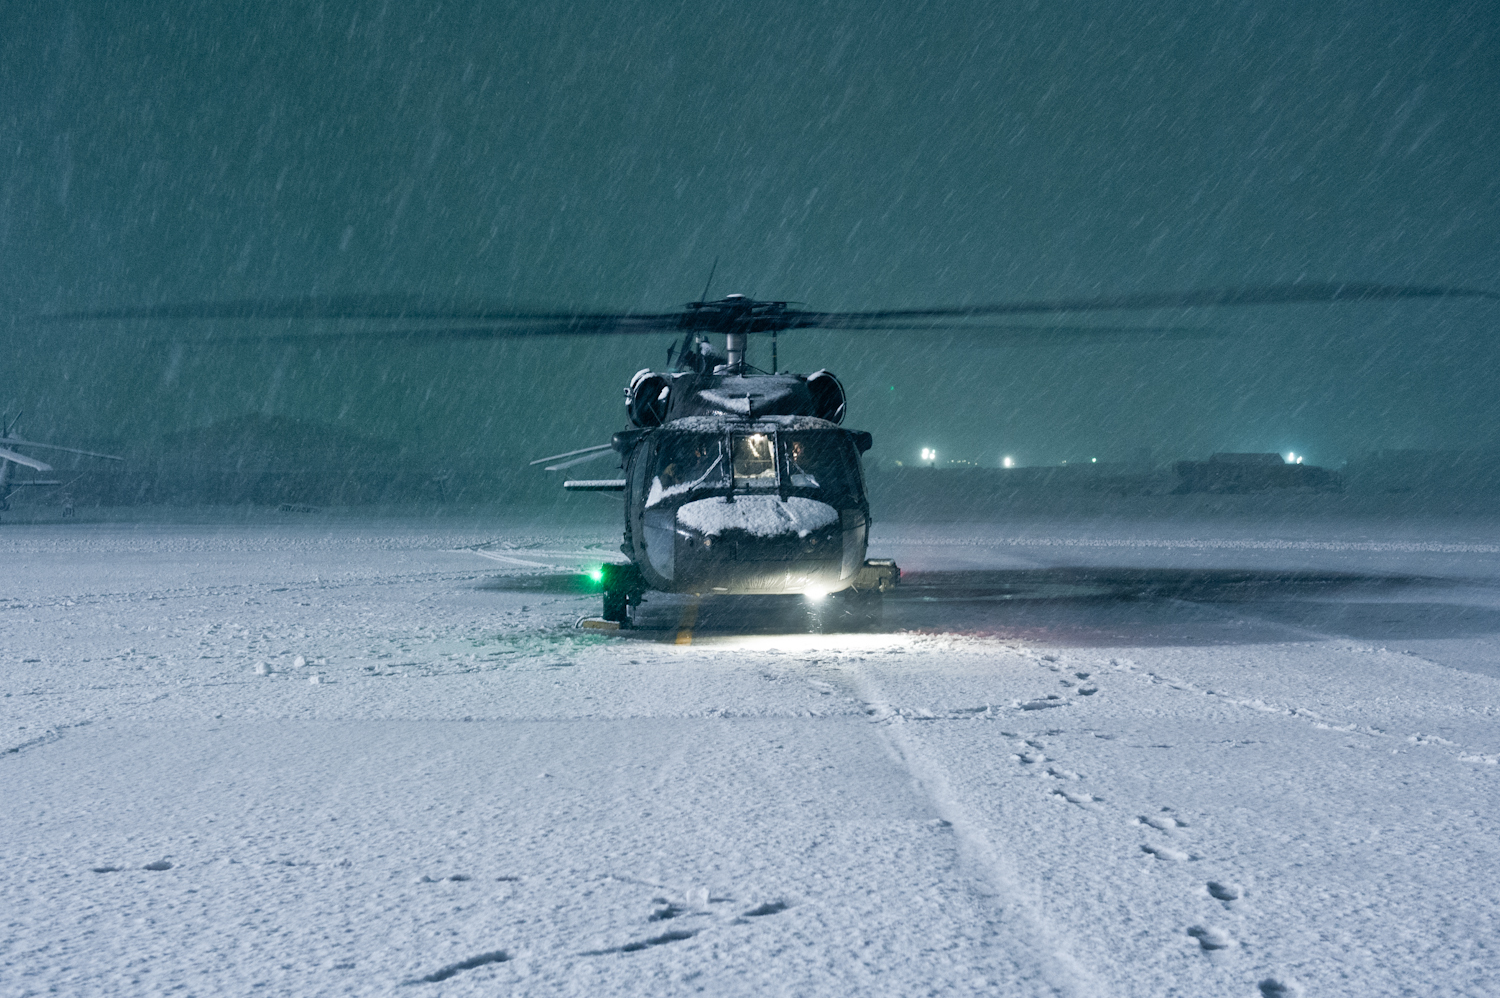 A UH-60 Black Hawk Helicopter with A Company, 5th Battalion, 101st Combat Aviation Brigade gets run up to ensure mission readiness during a snow storm on Bagram Airfield, Afghanistan Dec. 27. (U.S. Army photo by Sgt. Duncan Brennan, 101st CAB public affairs)